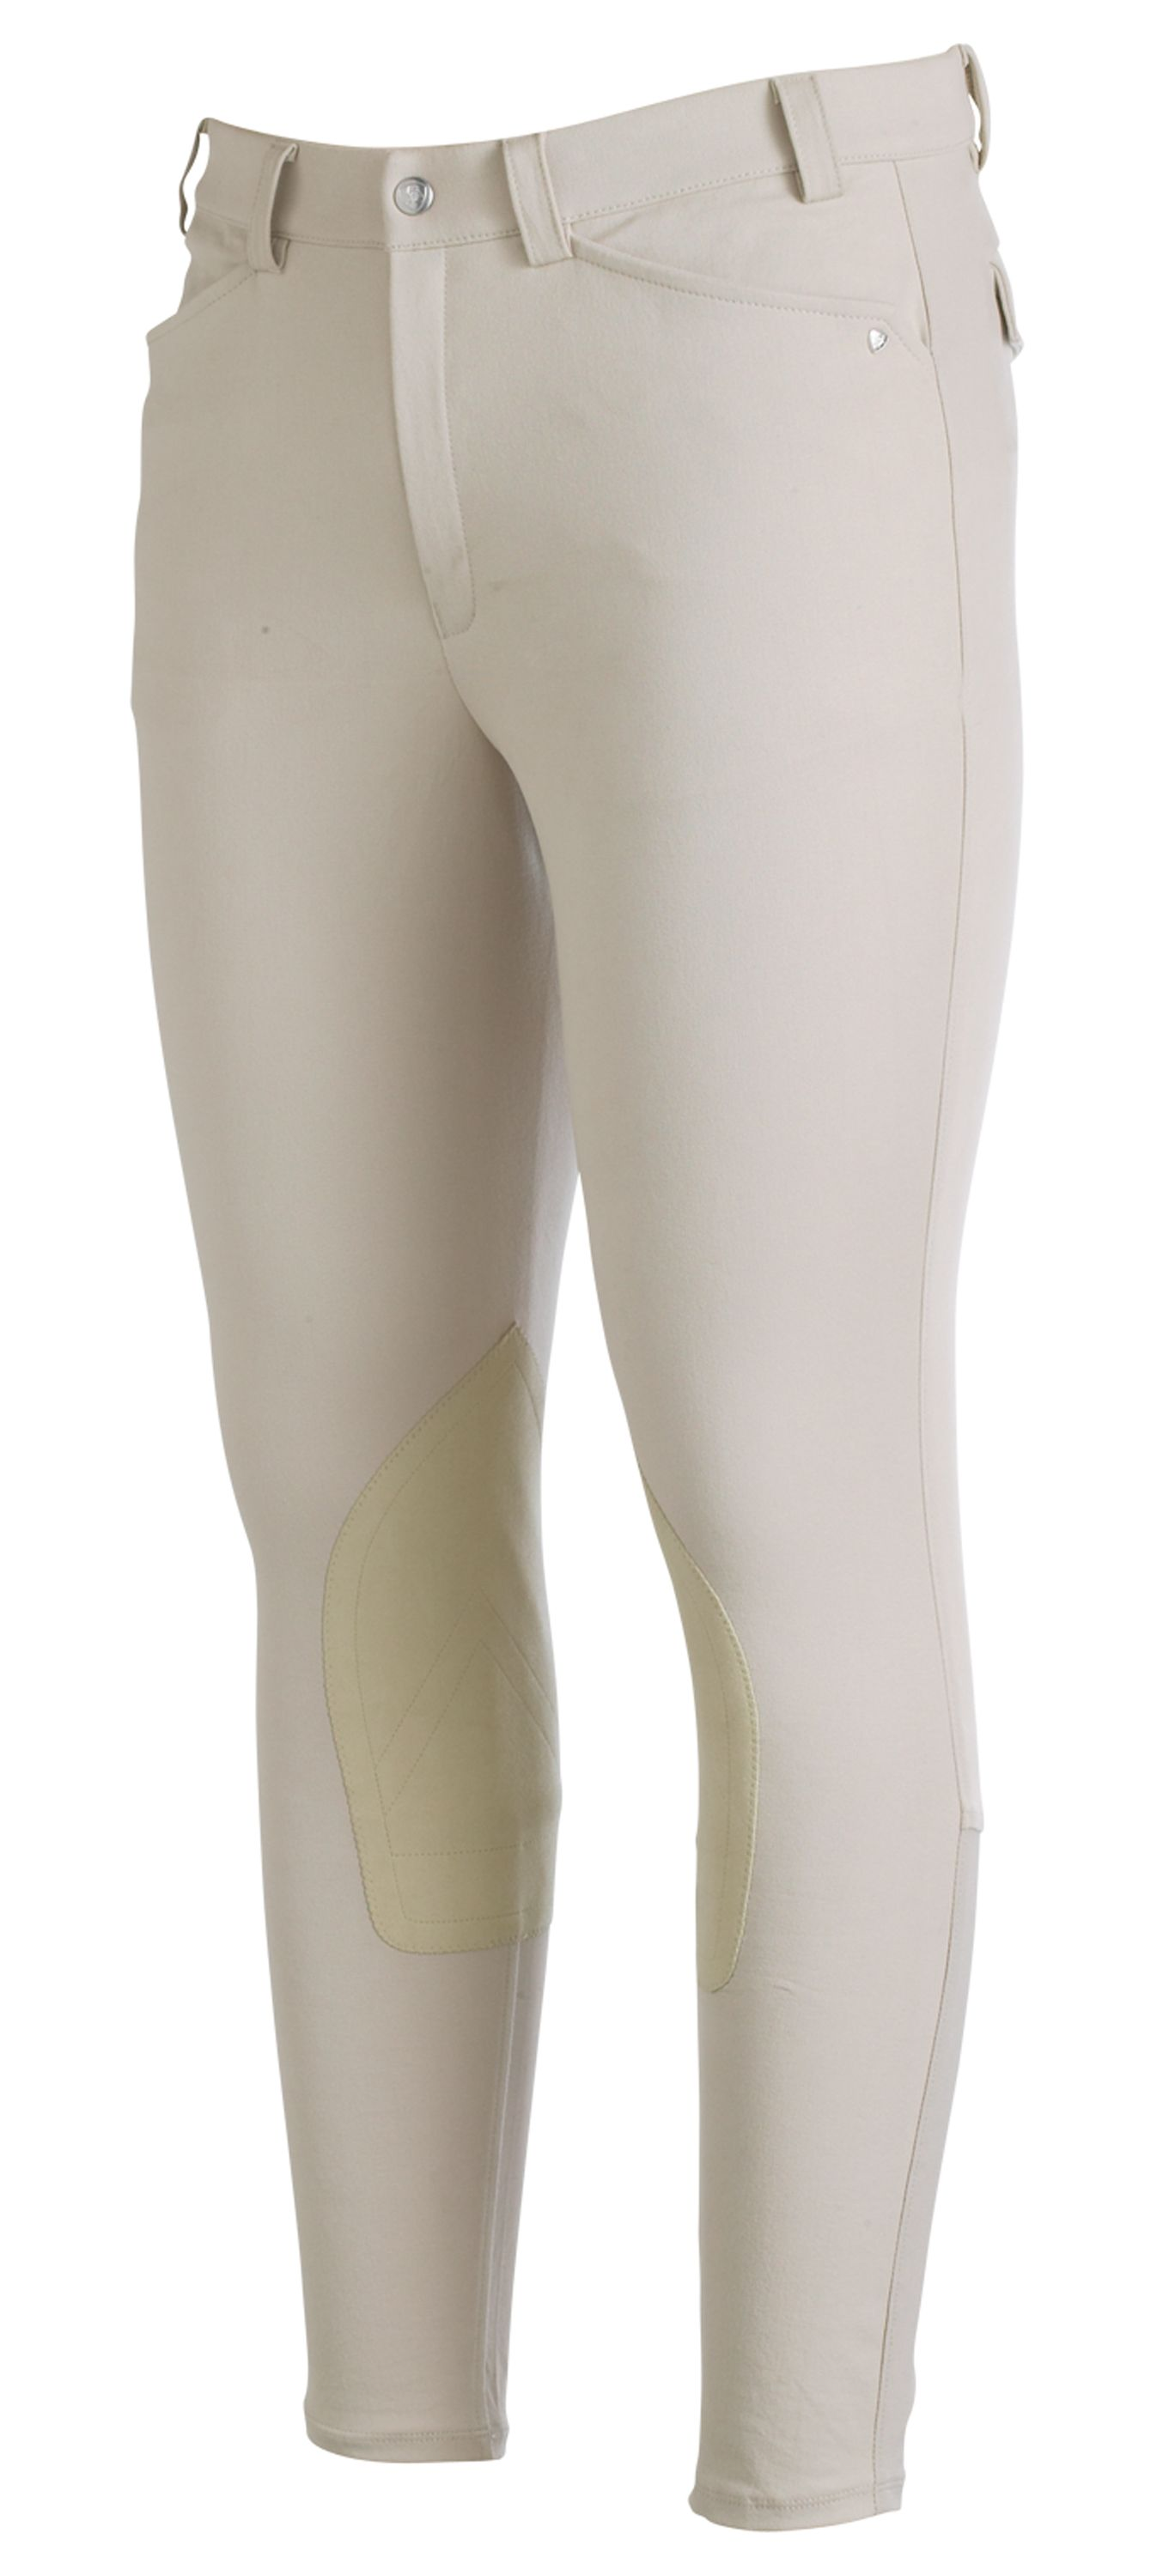 Ariat Mens Heritage Knee Patch Riding Breeches